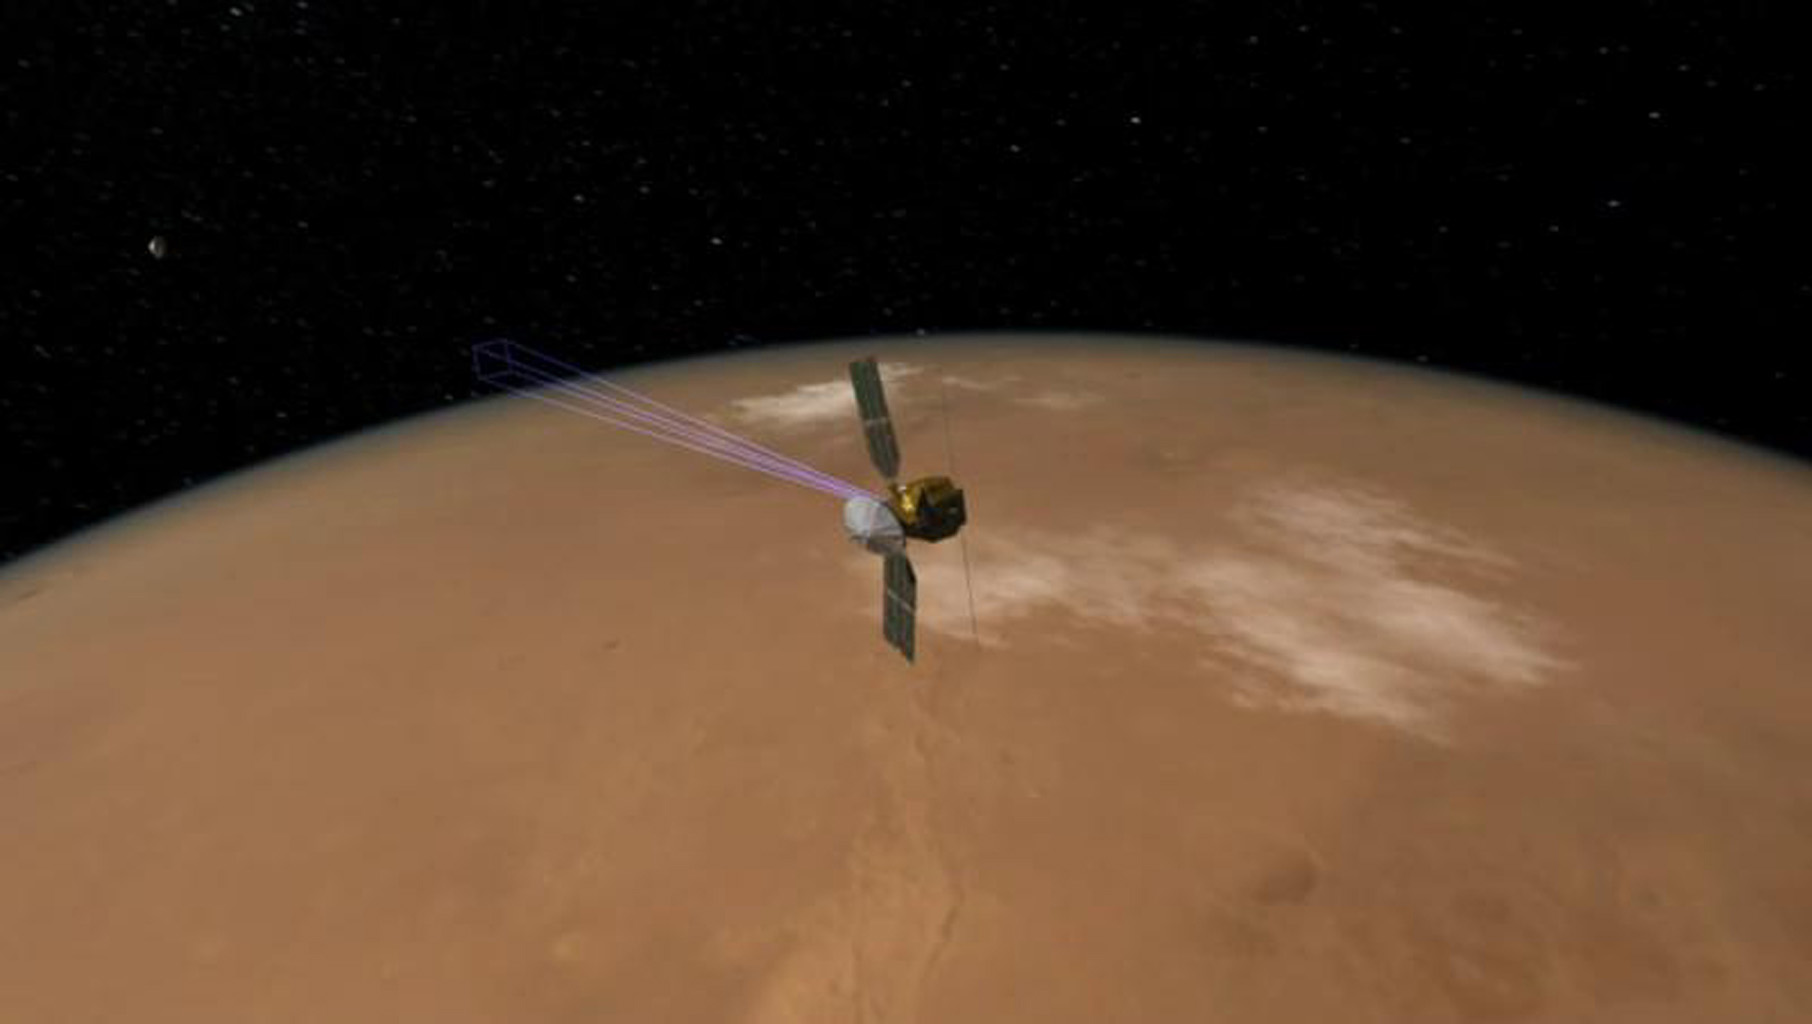 This image shows how NASA's Mars Reconnaissance Orbiter was able to snap a picture of NASA's Phoenix Mars Lander as it parachuted down to the surface of Mars.